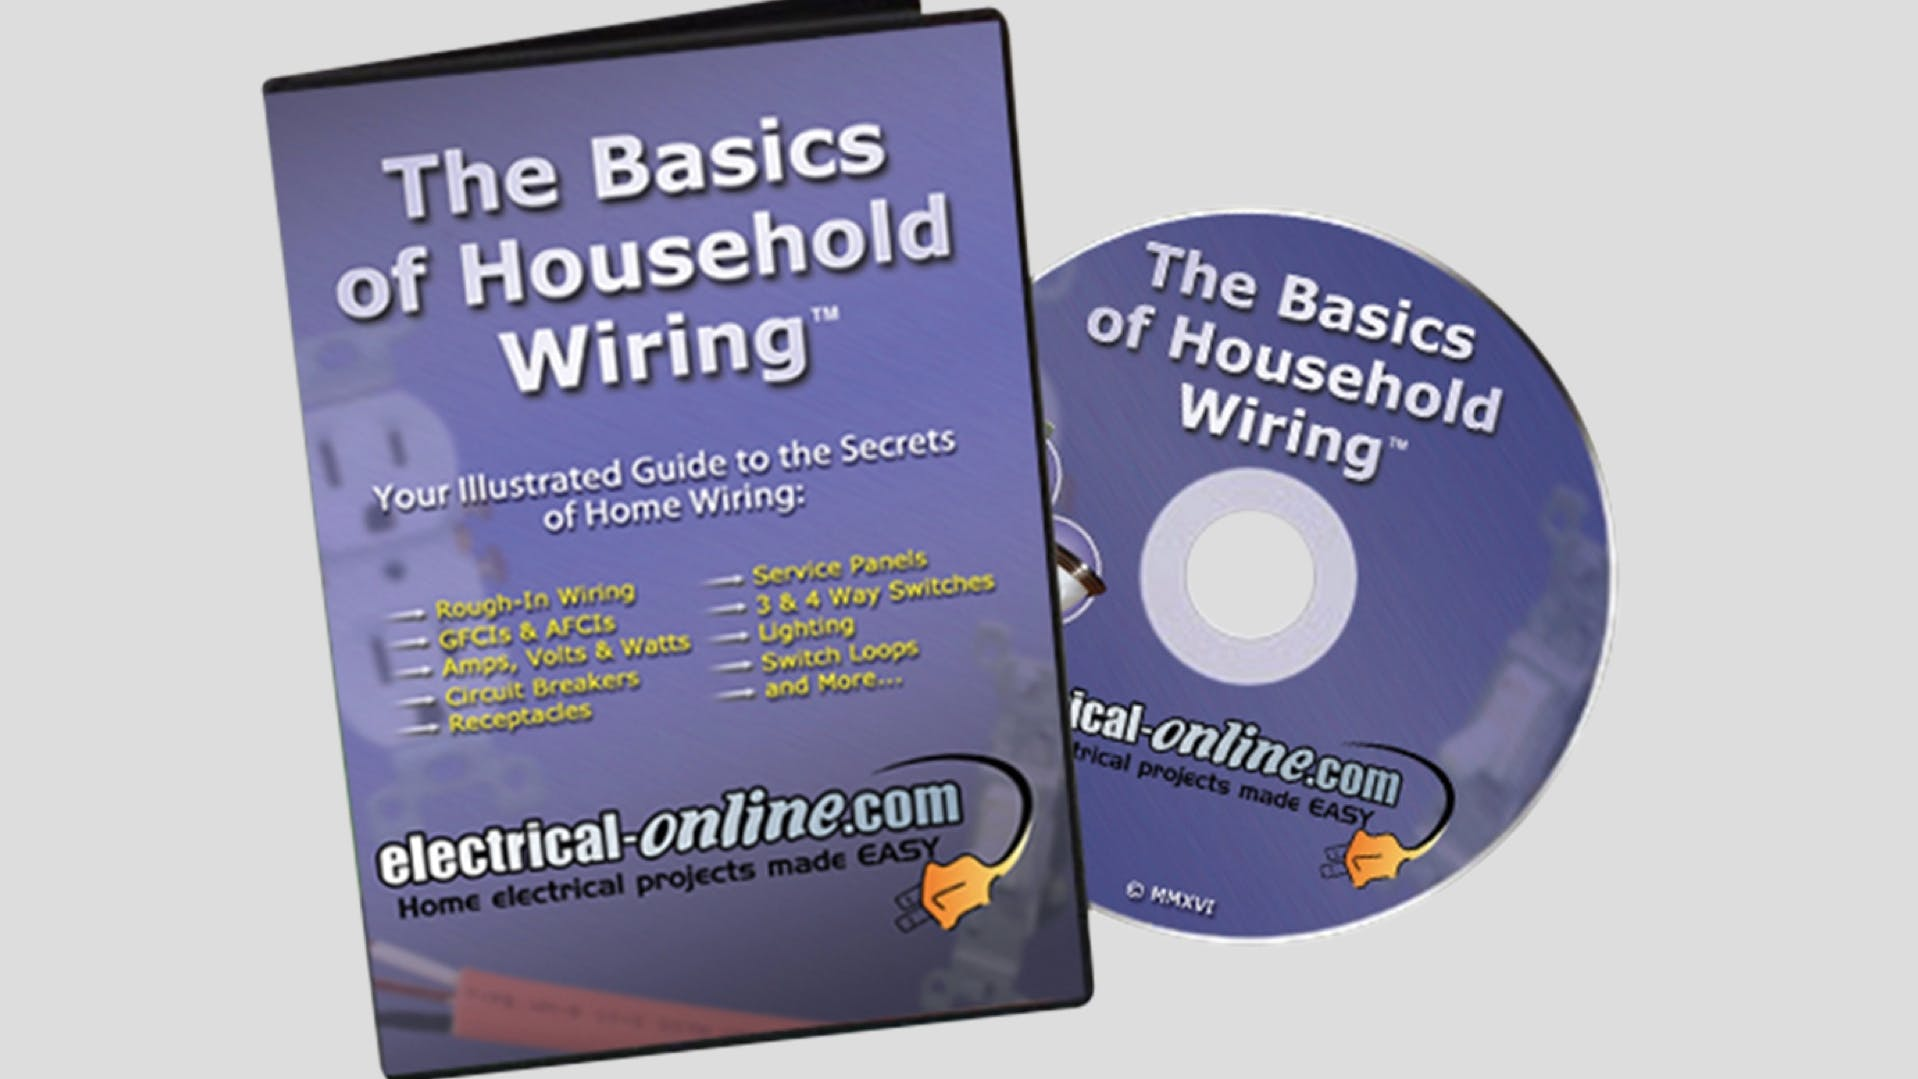 Electrical-online – The Basics of Household Wiring on